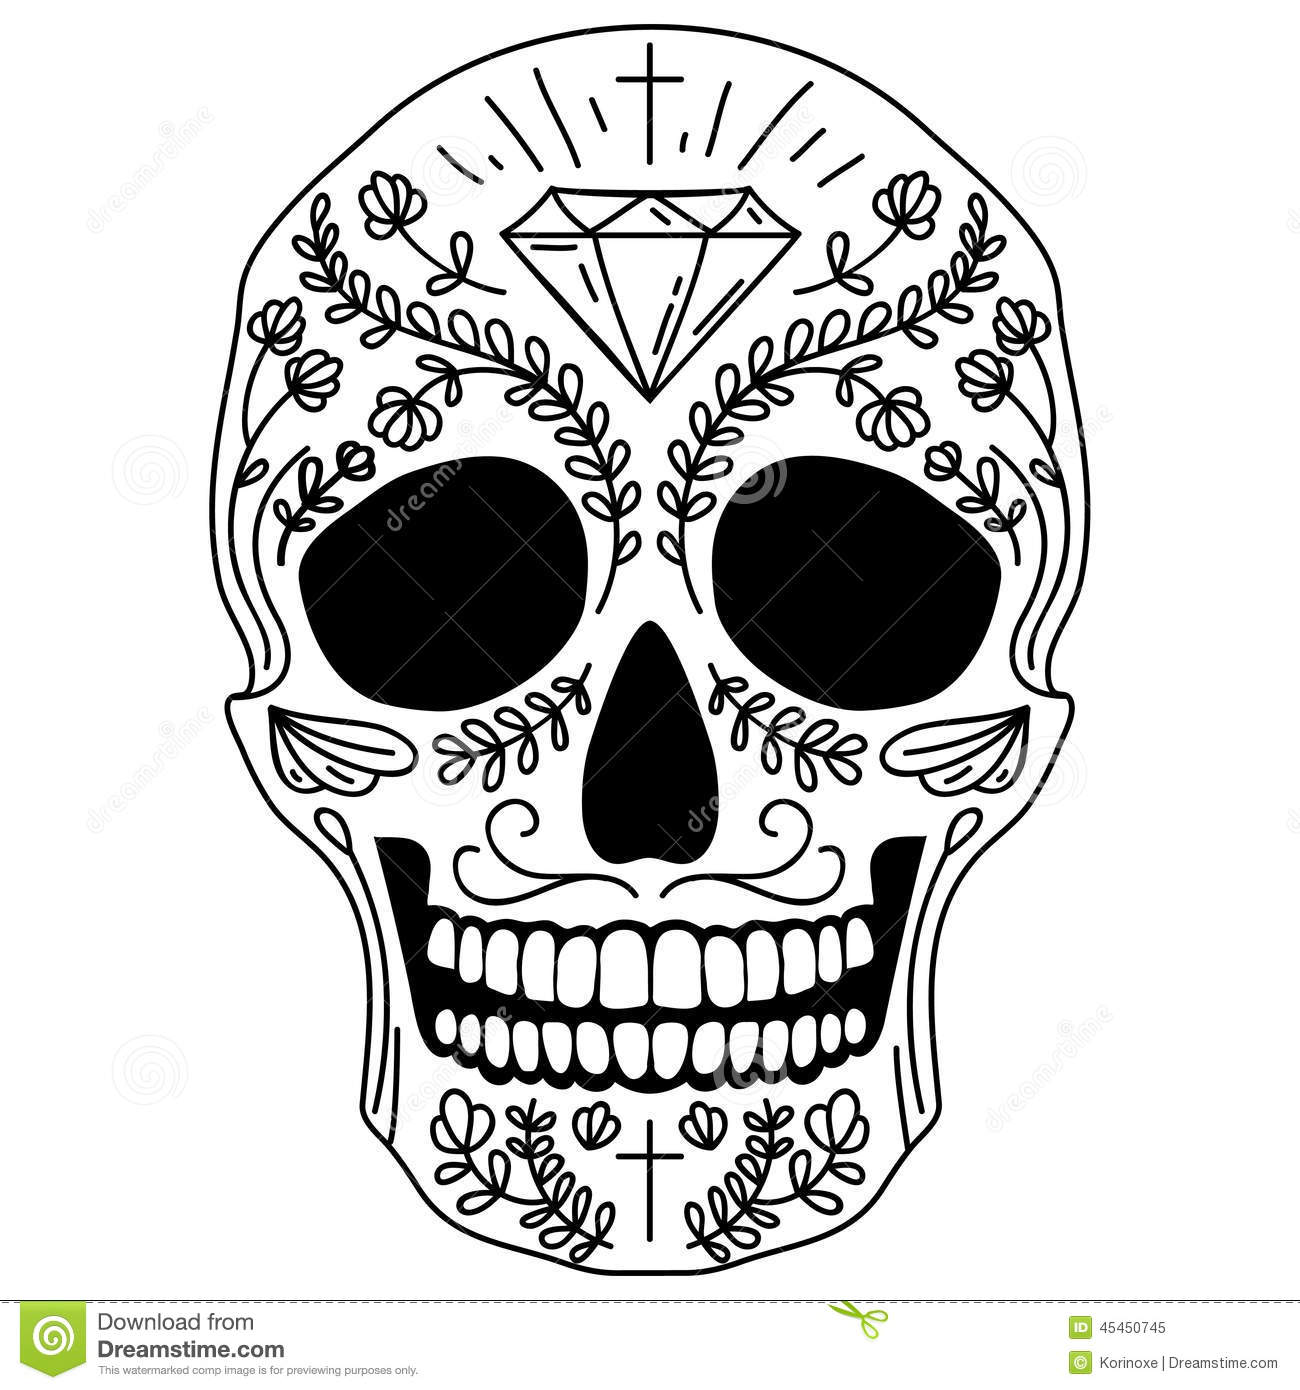 black and white sugar skull stock vector illustration of. Black Bedroom Furniture Sets. Home Design Ideas